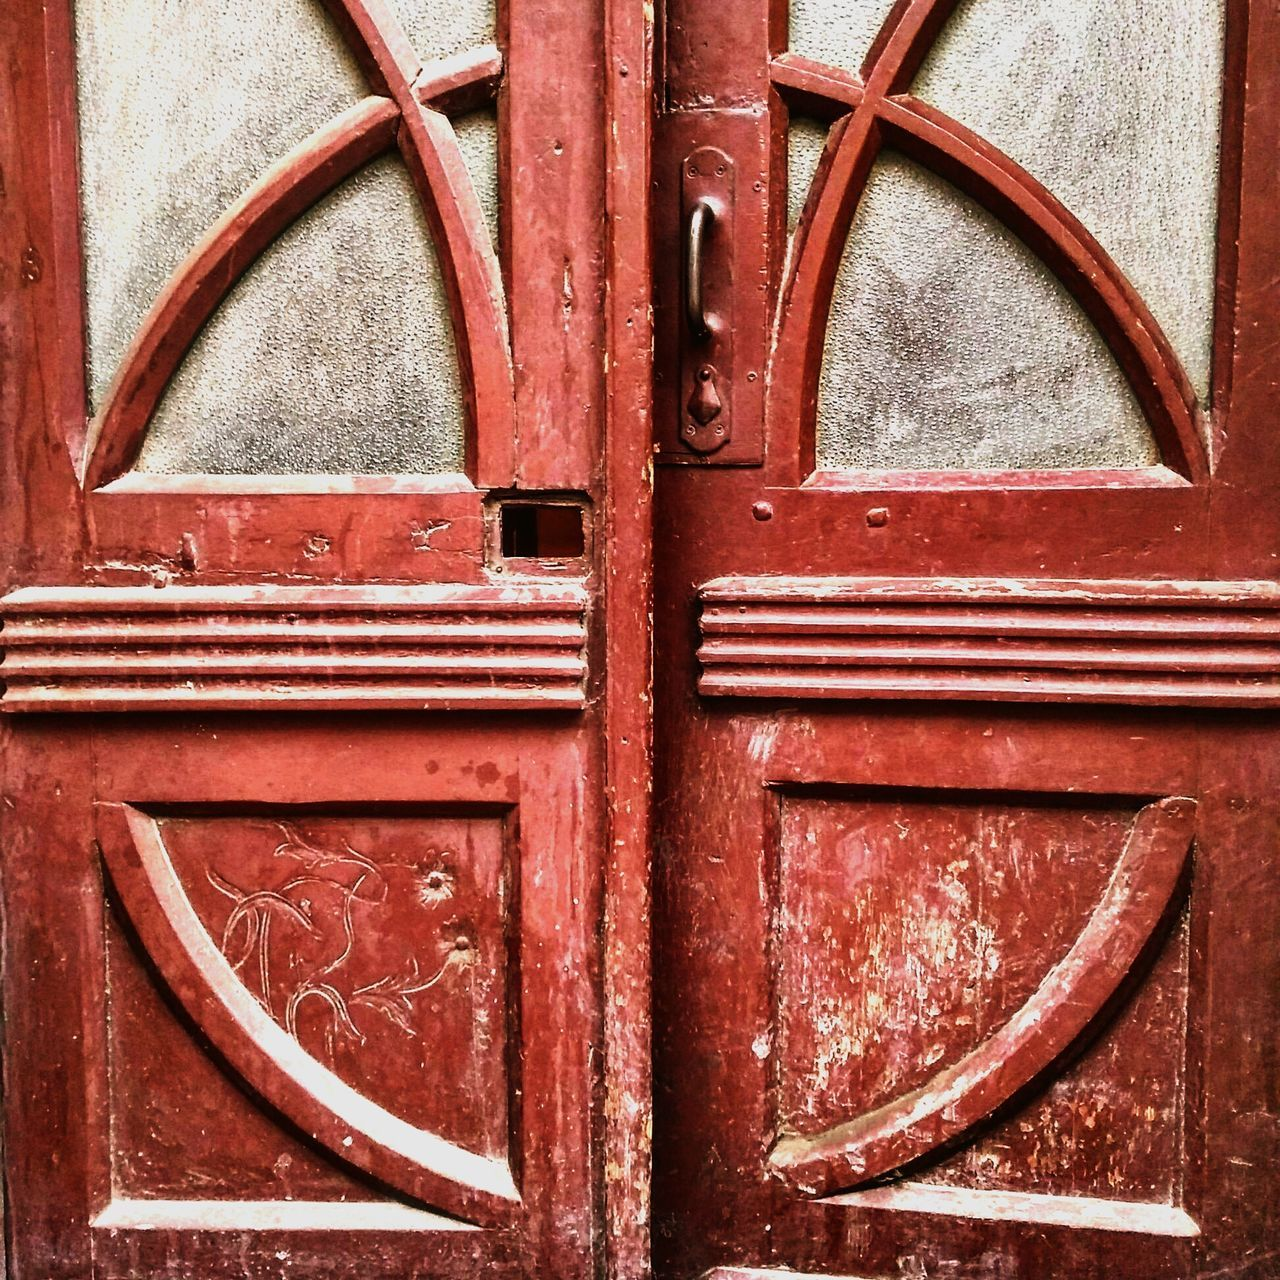 Art Deco Art Nouveau Art Nouveau Style Art Nouveau Door Secession Full FrameSecesja Door Closed Day Outdoors Red No People Close-up Backgrounds Hinge First Eyeem Photo